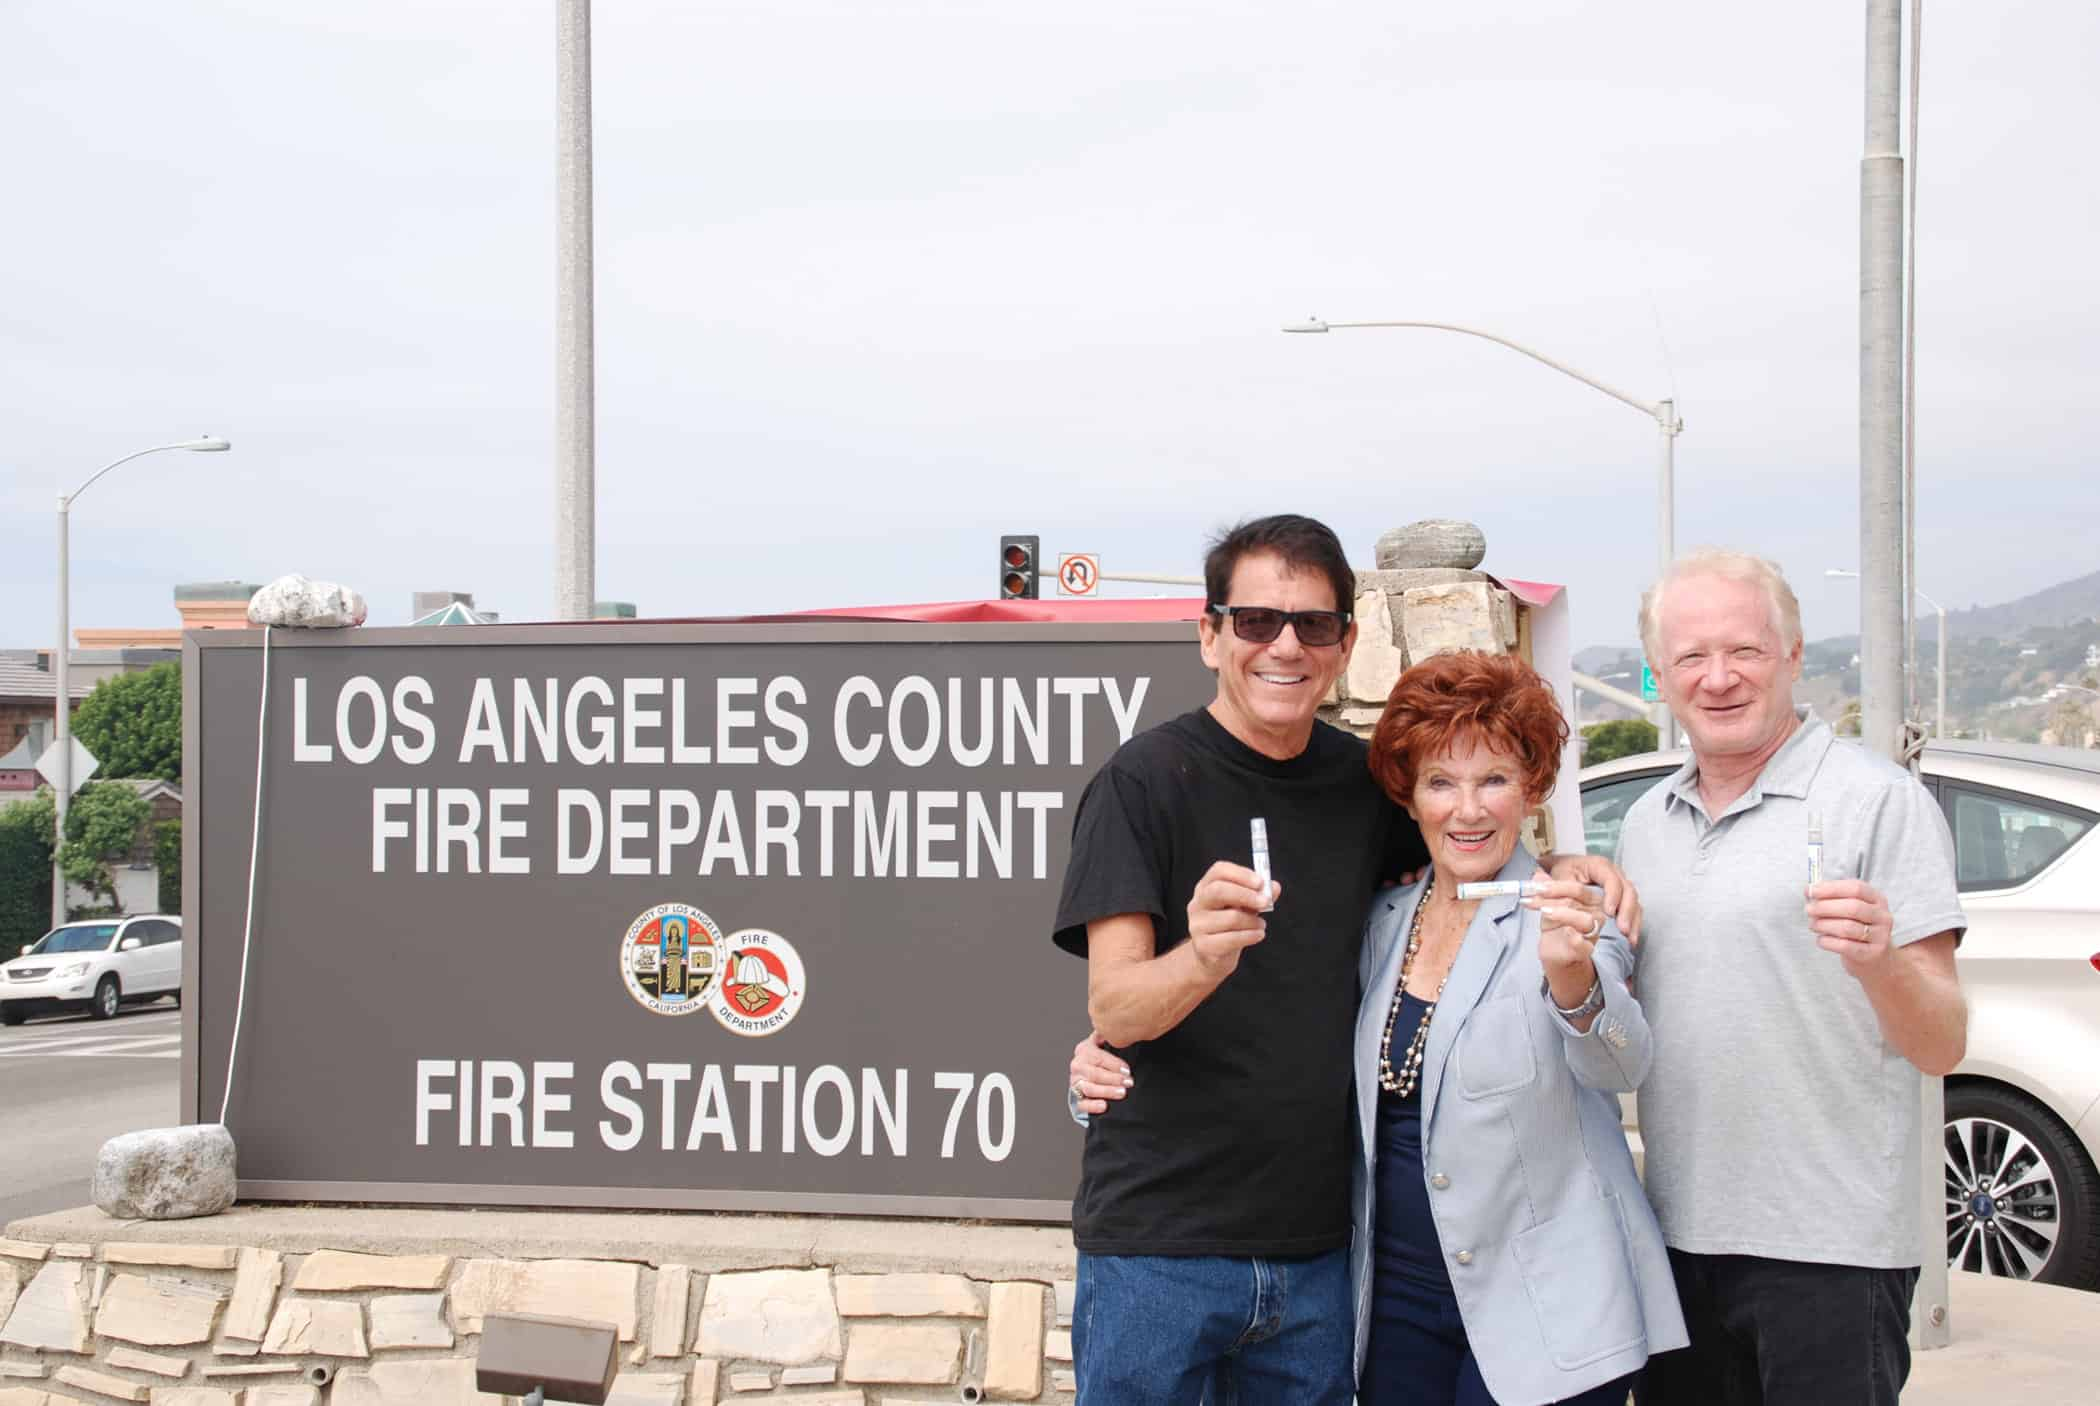 Anson Williams, Marion Ross and Don Most from Happy Days in recent photo holding containers of Alert Drops